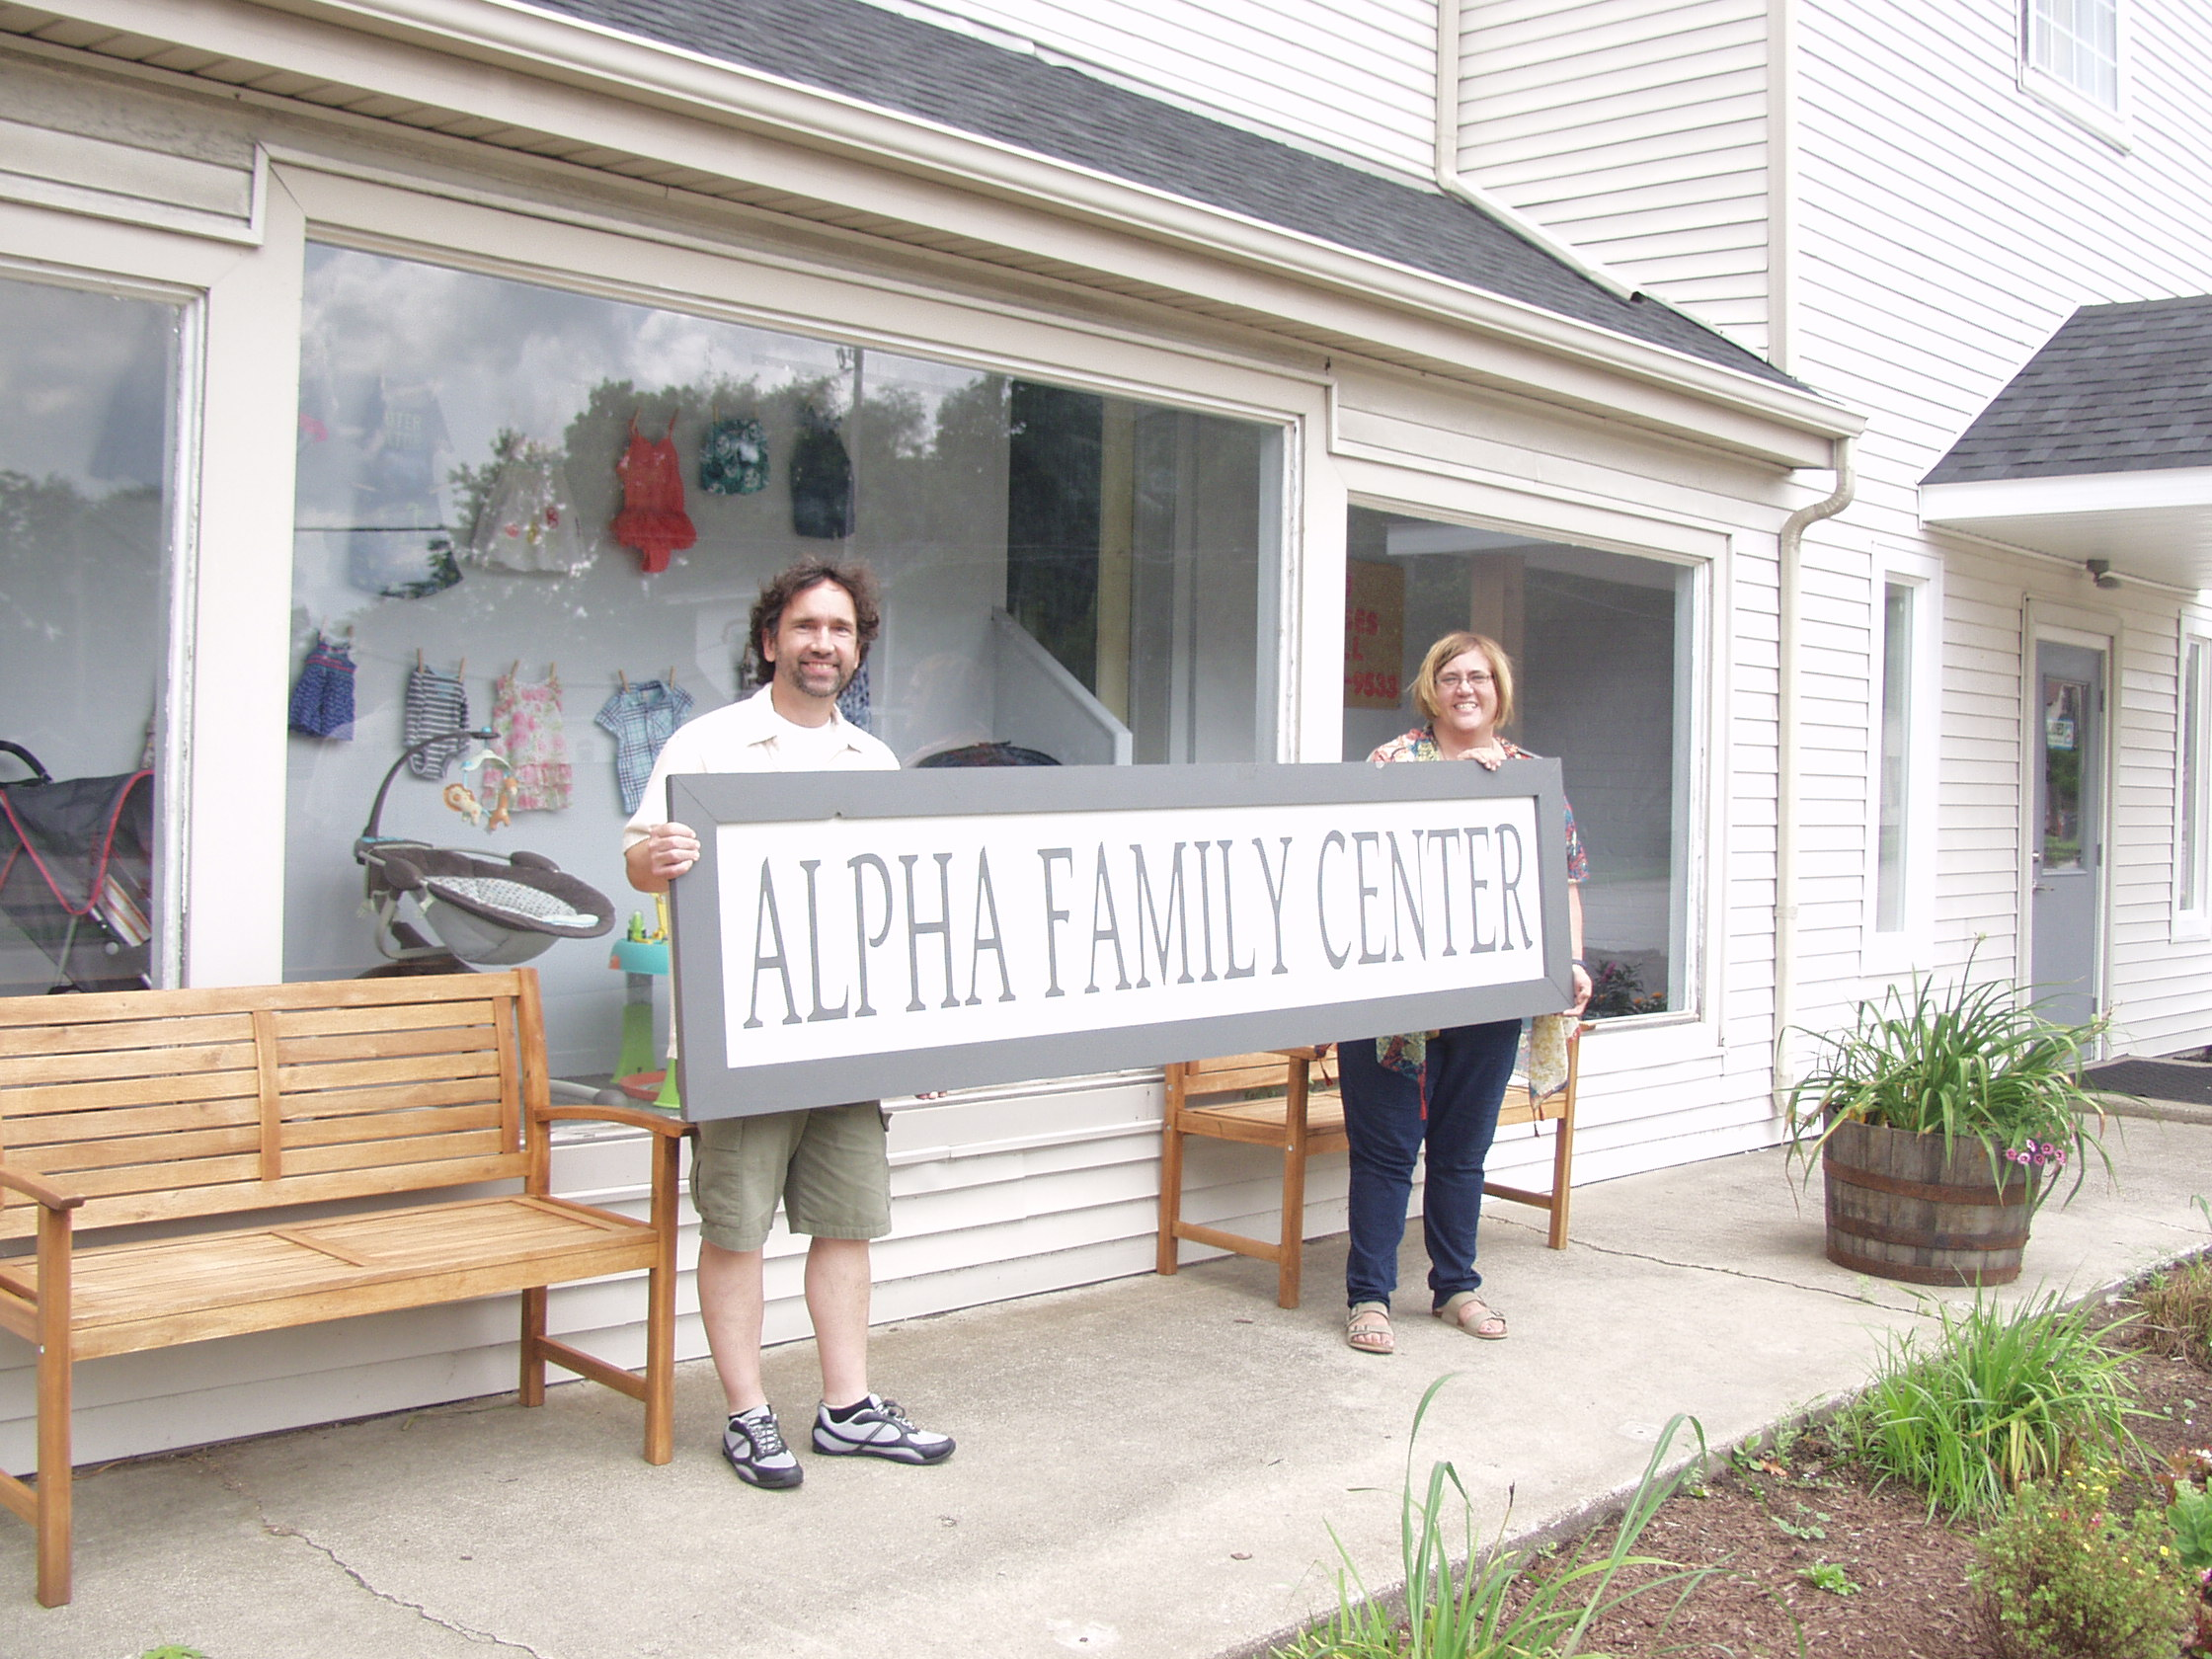 Alpha Family Center of Lowell No. 1